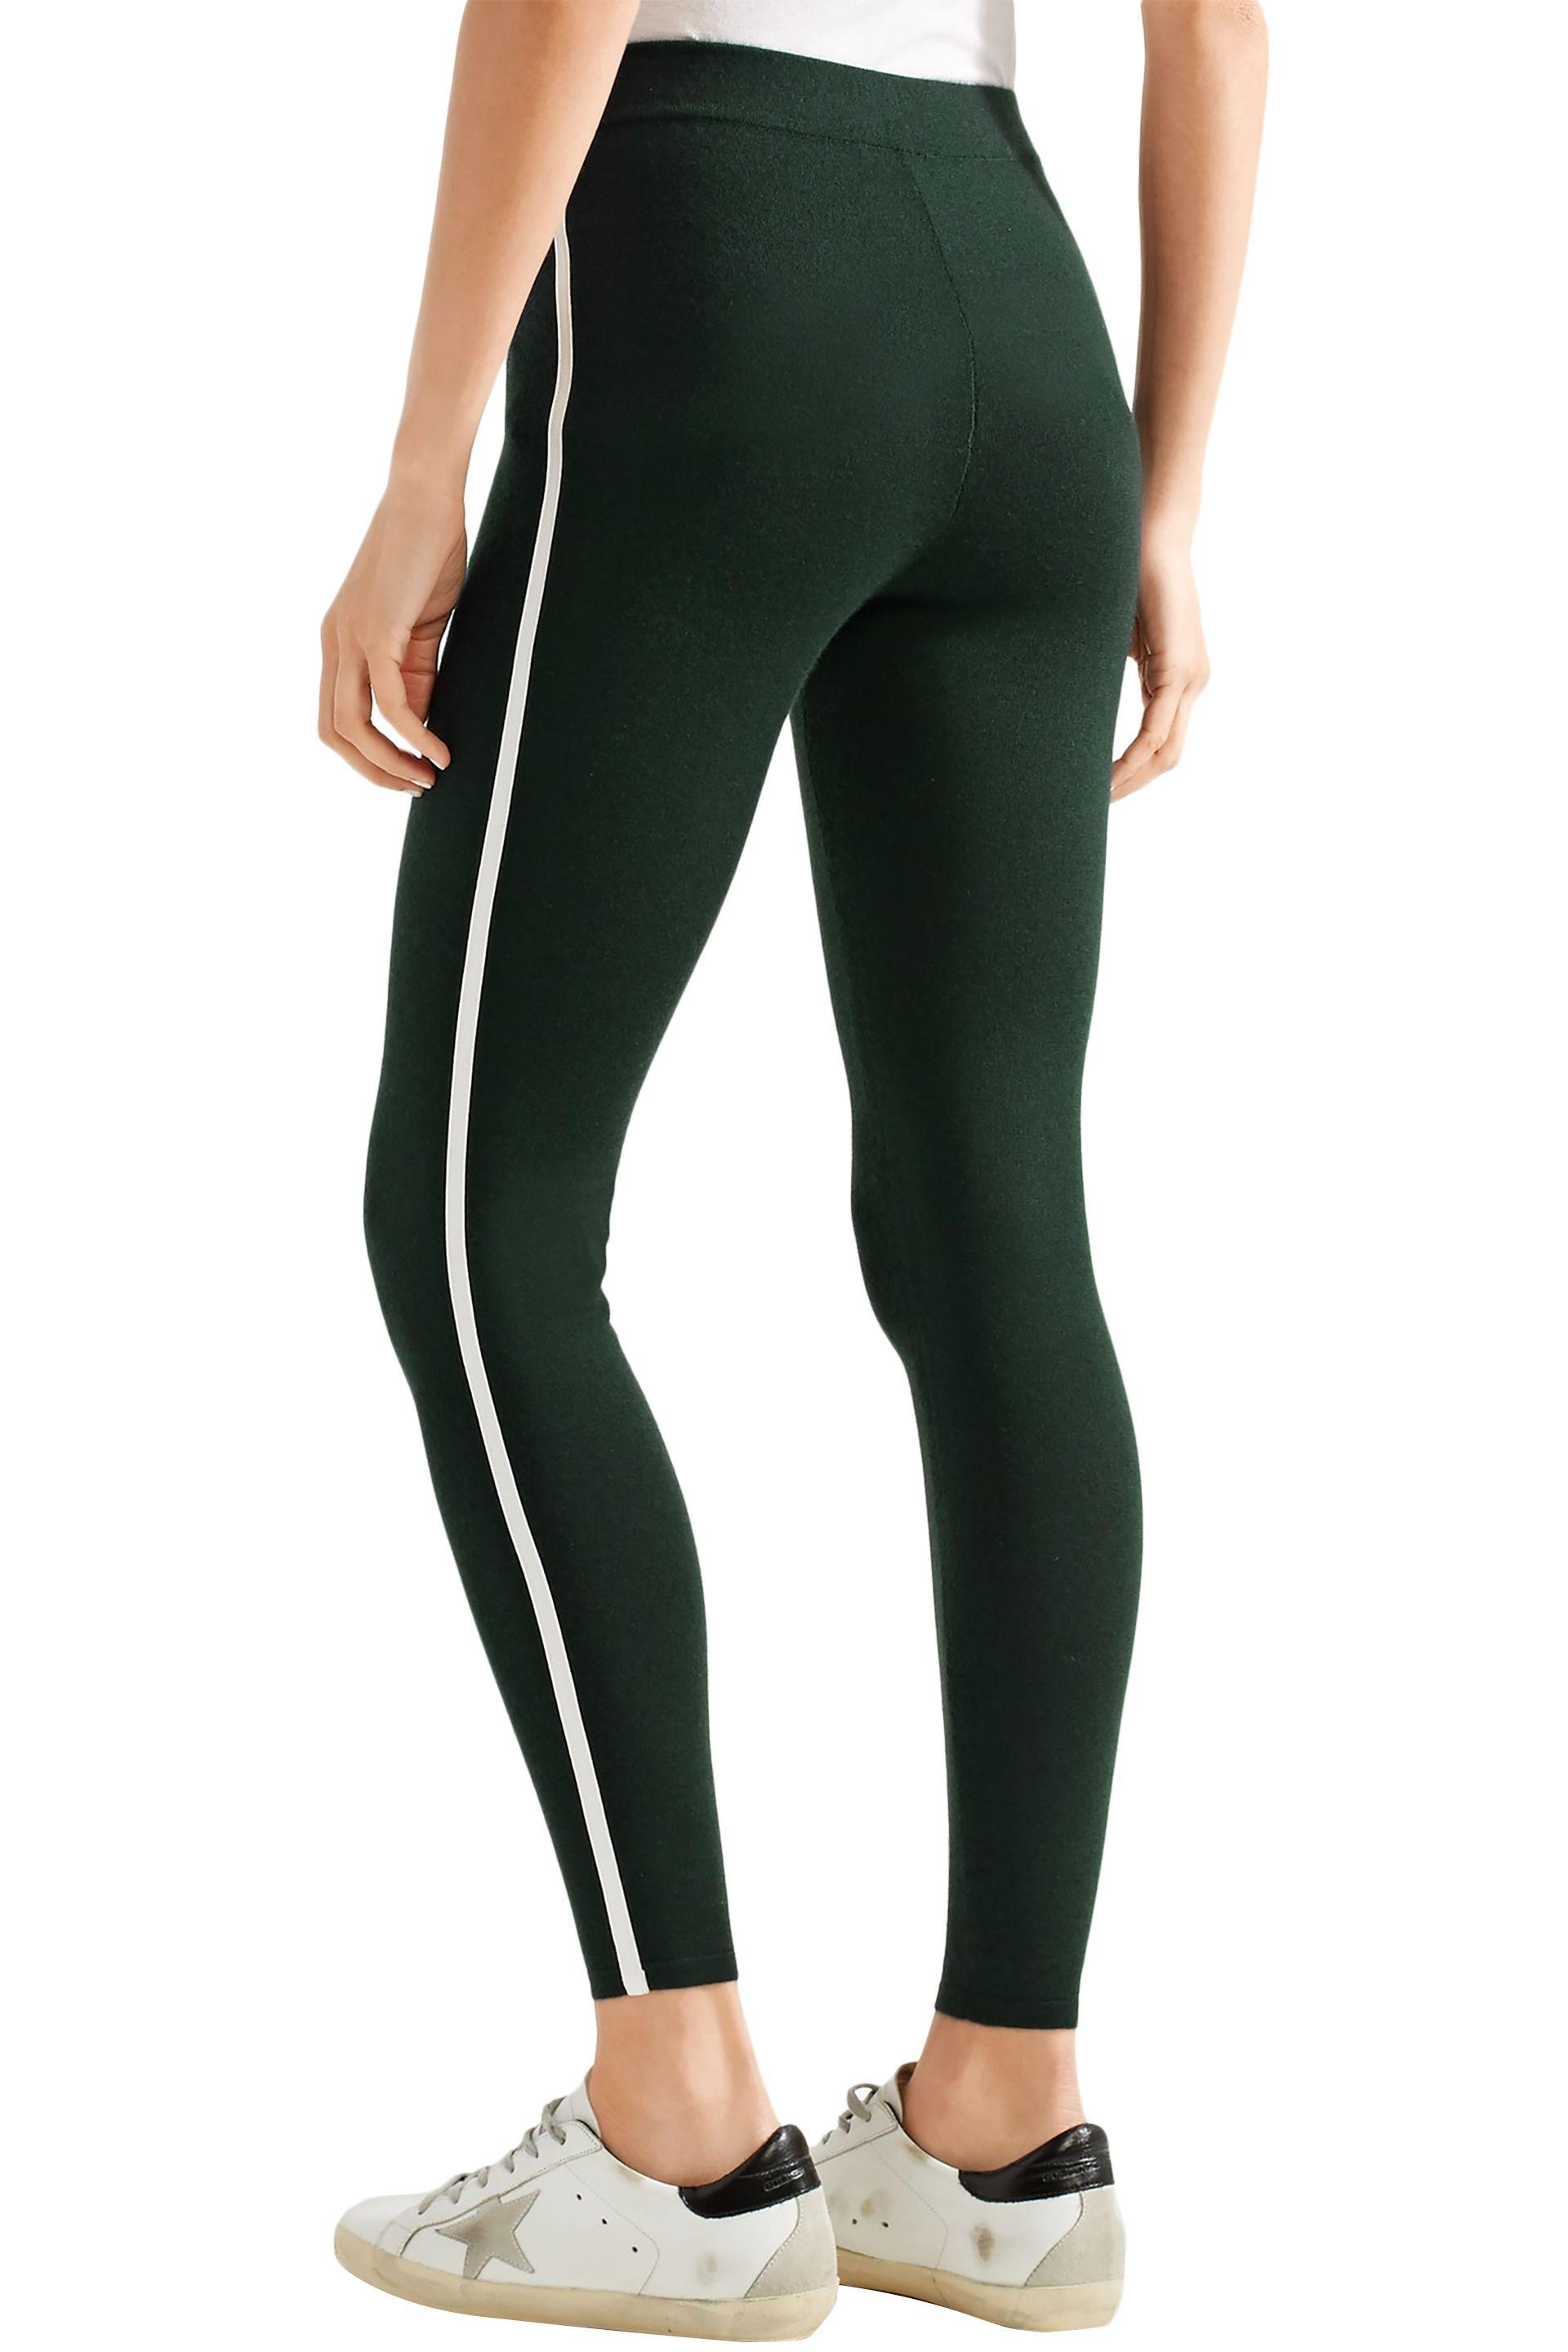 5d2428b0e75d9f James Perse Cashmere-blend Leggings Dark Green in Black - Save 40% - Lyst